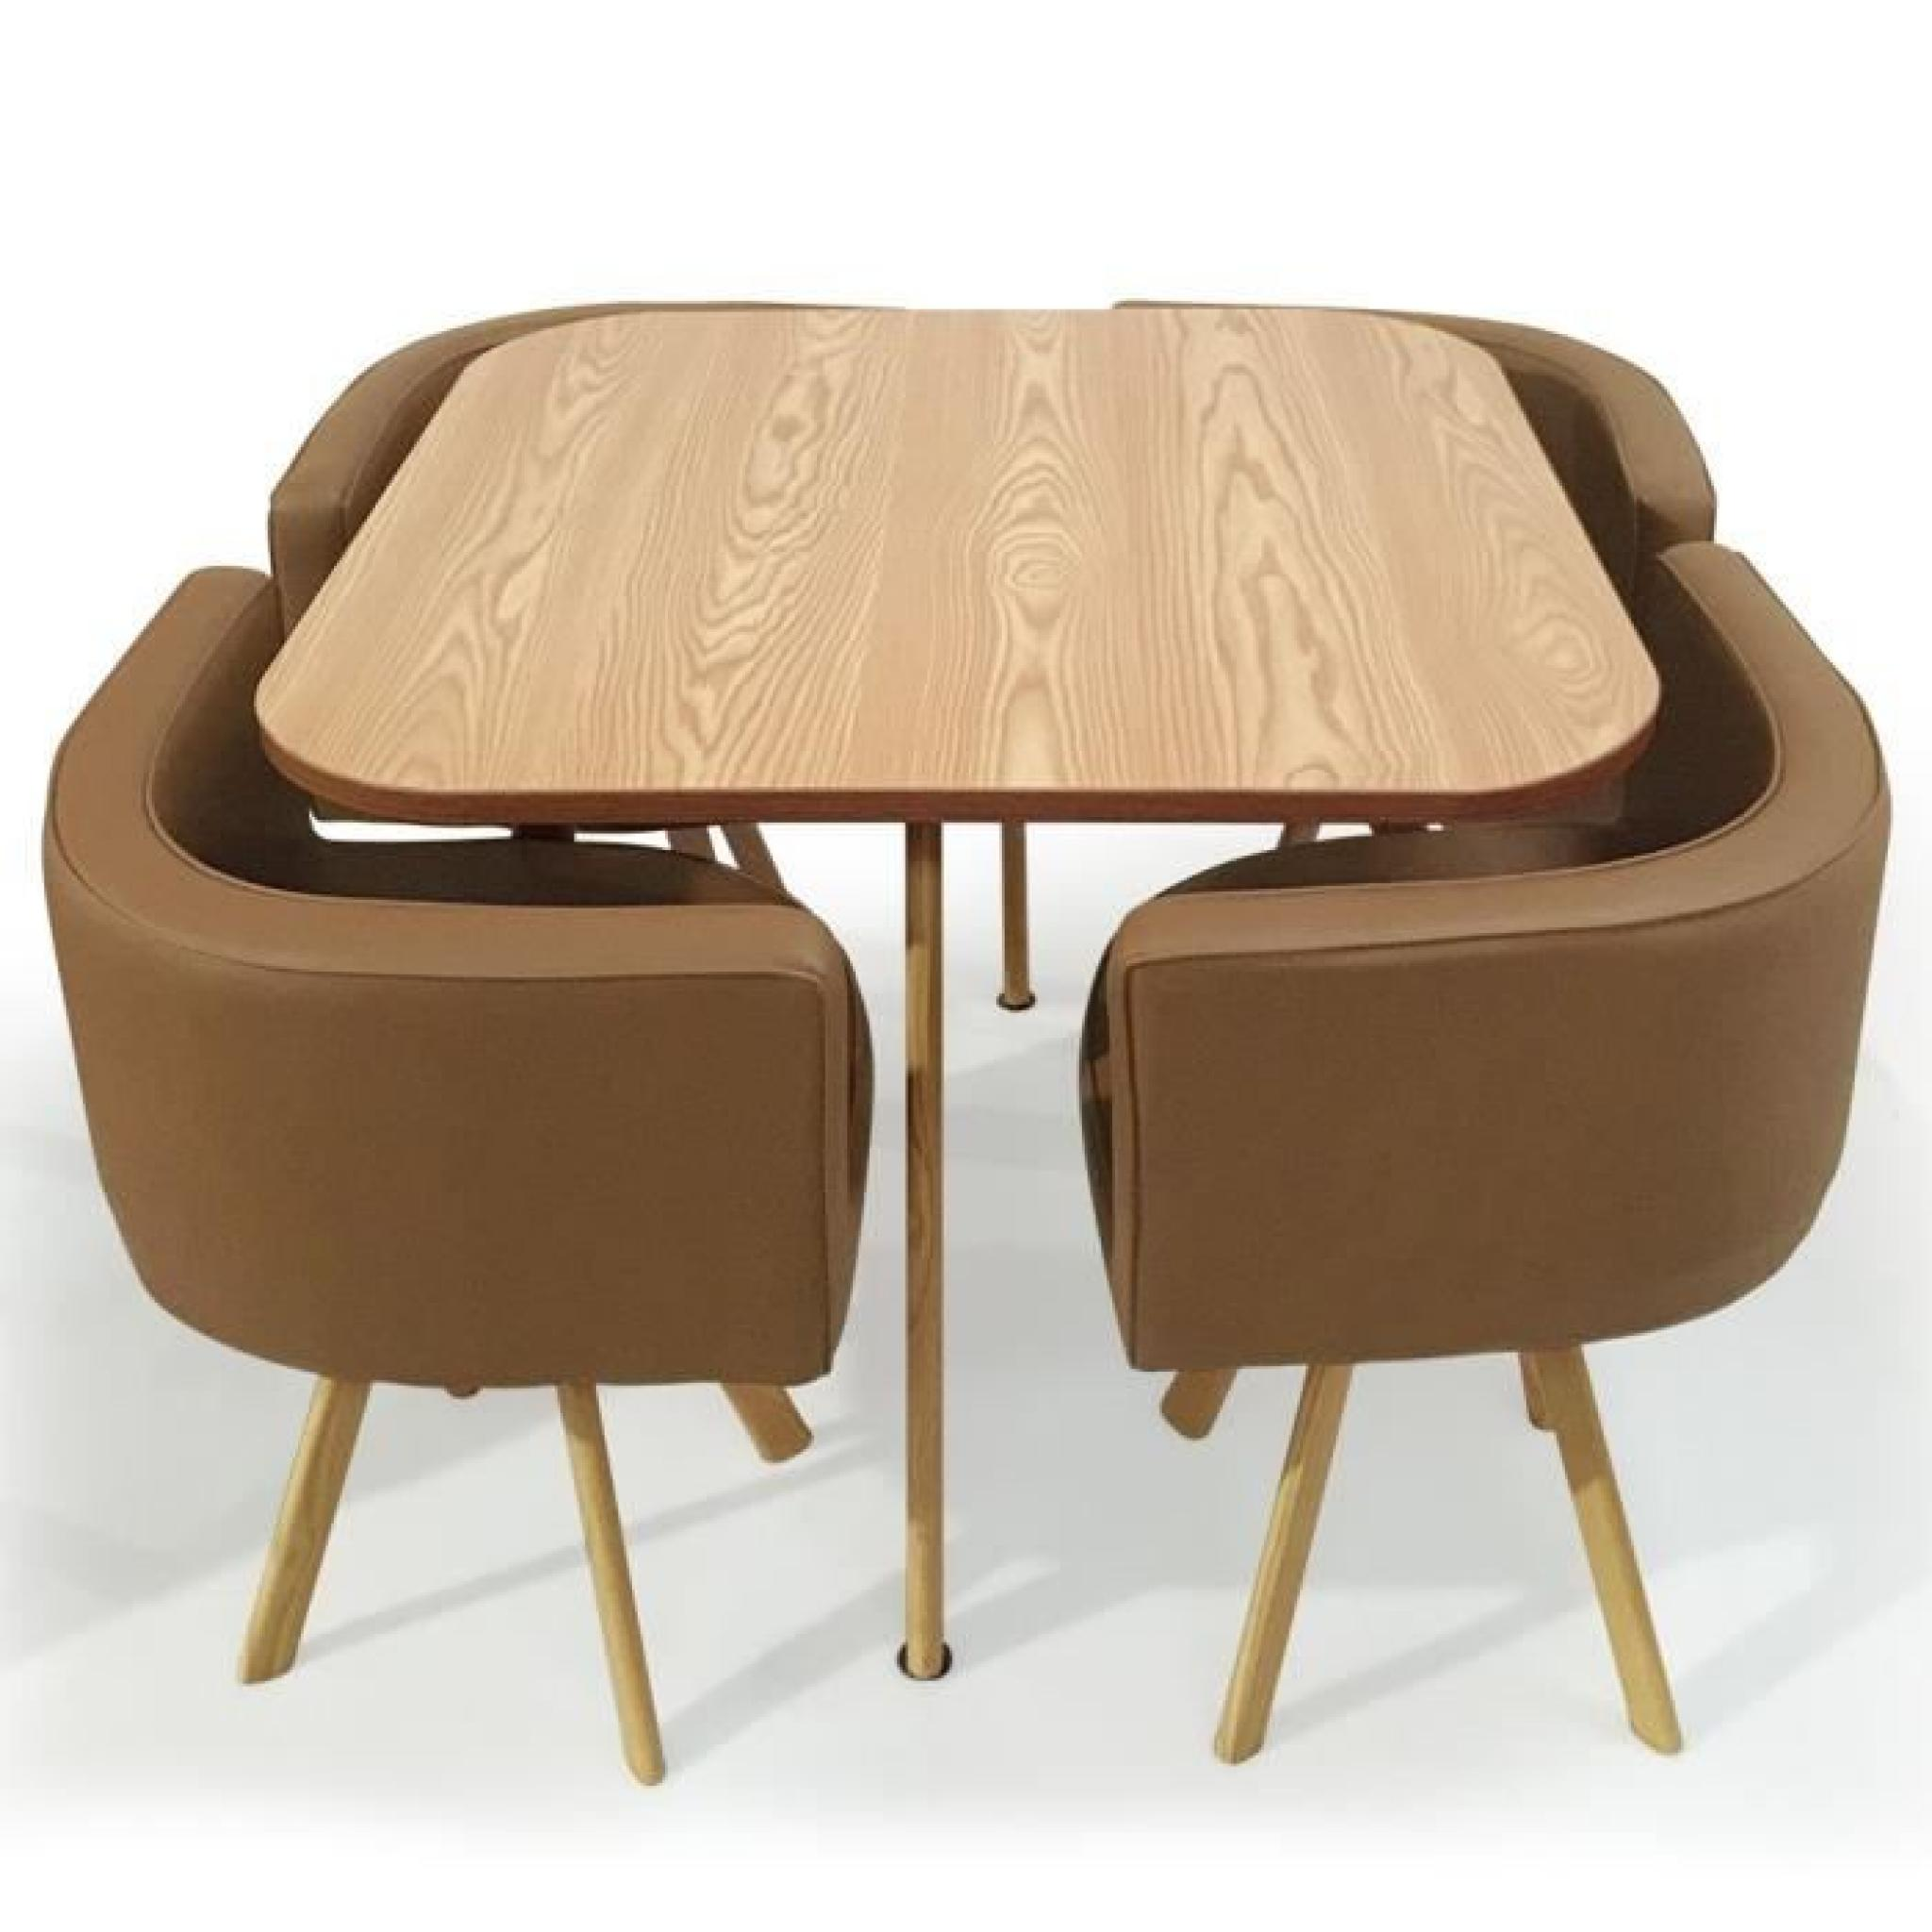 Ensemble table et chaise de cuisine pas cher valdiz for Ensemble table et chaise style scandinave